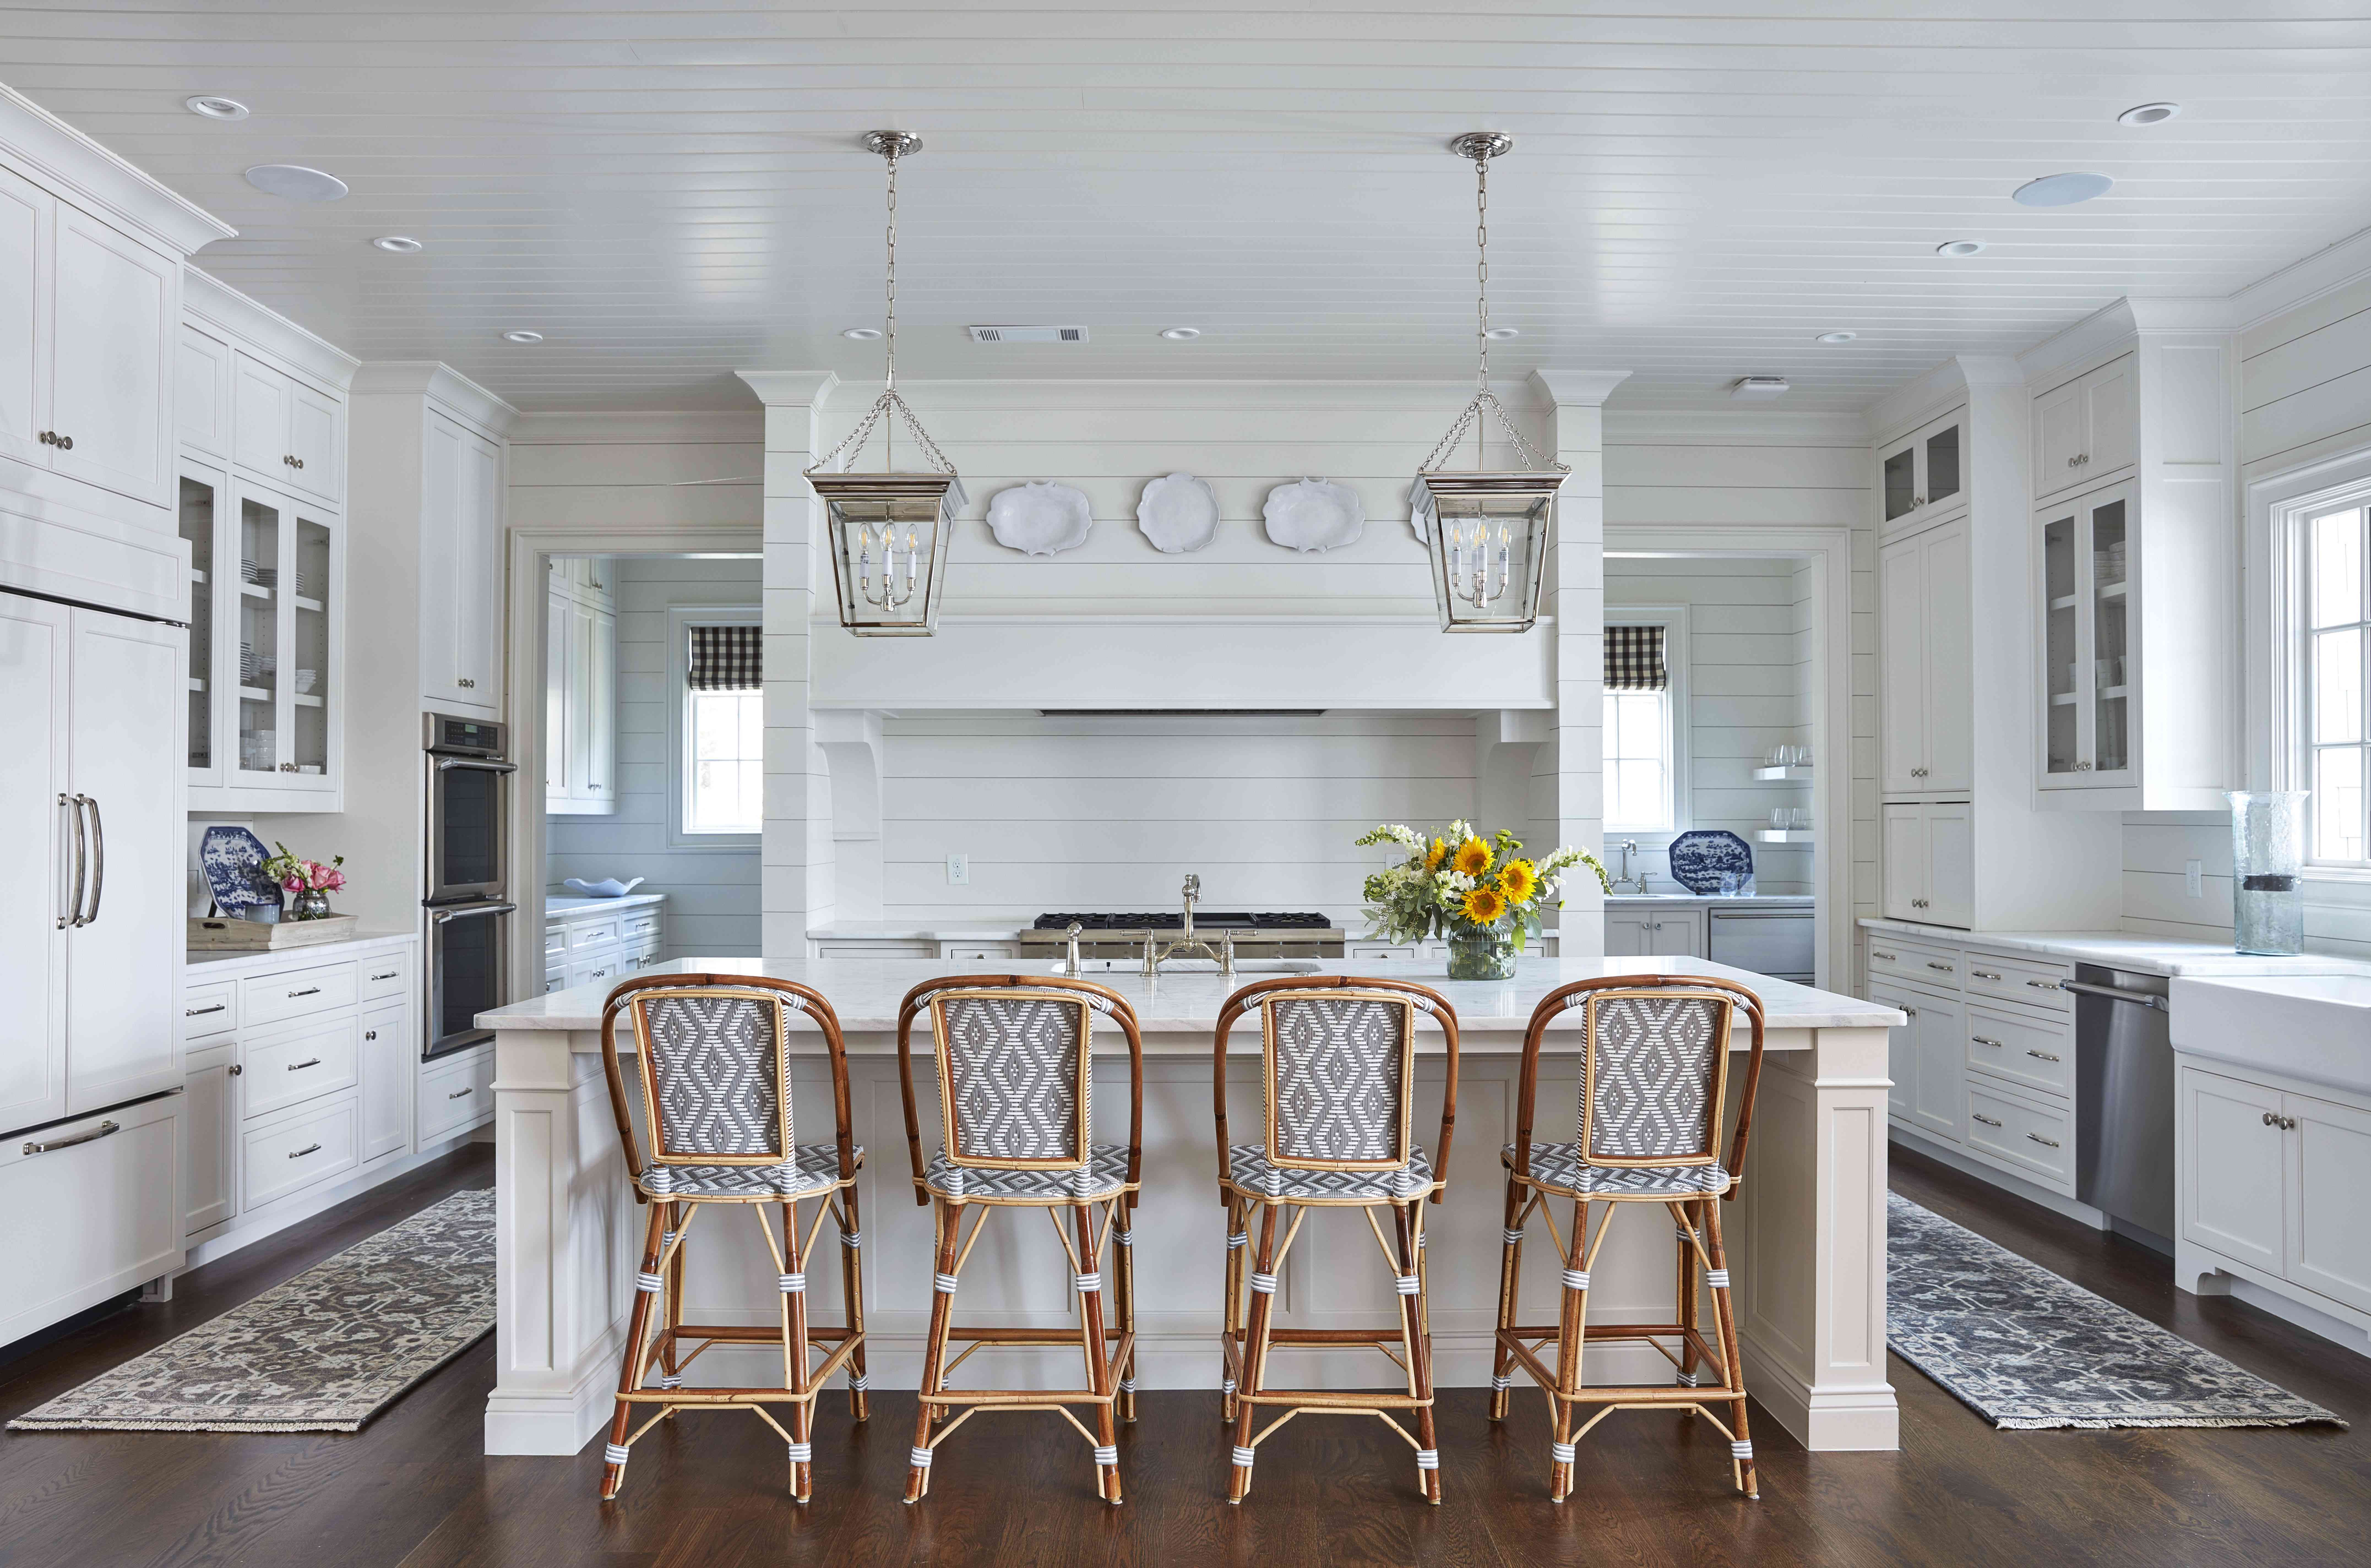 best kitchen ideas - traditional kitchen with rattan stools and shiplap